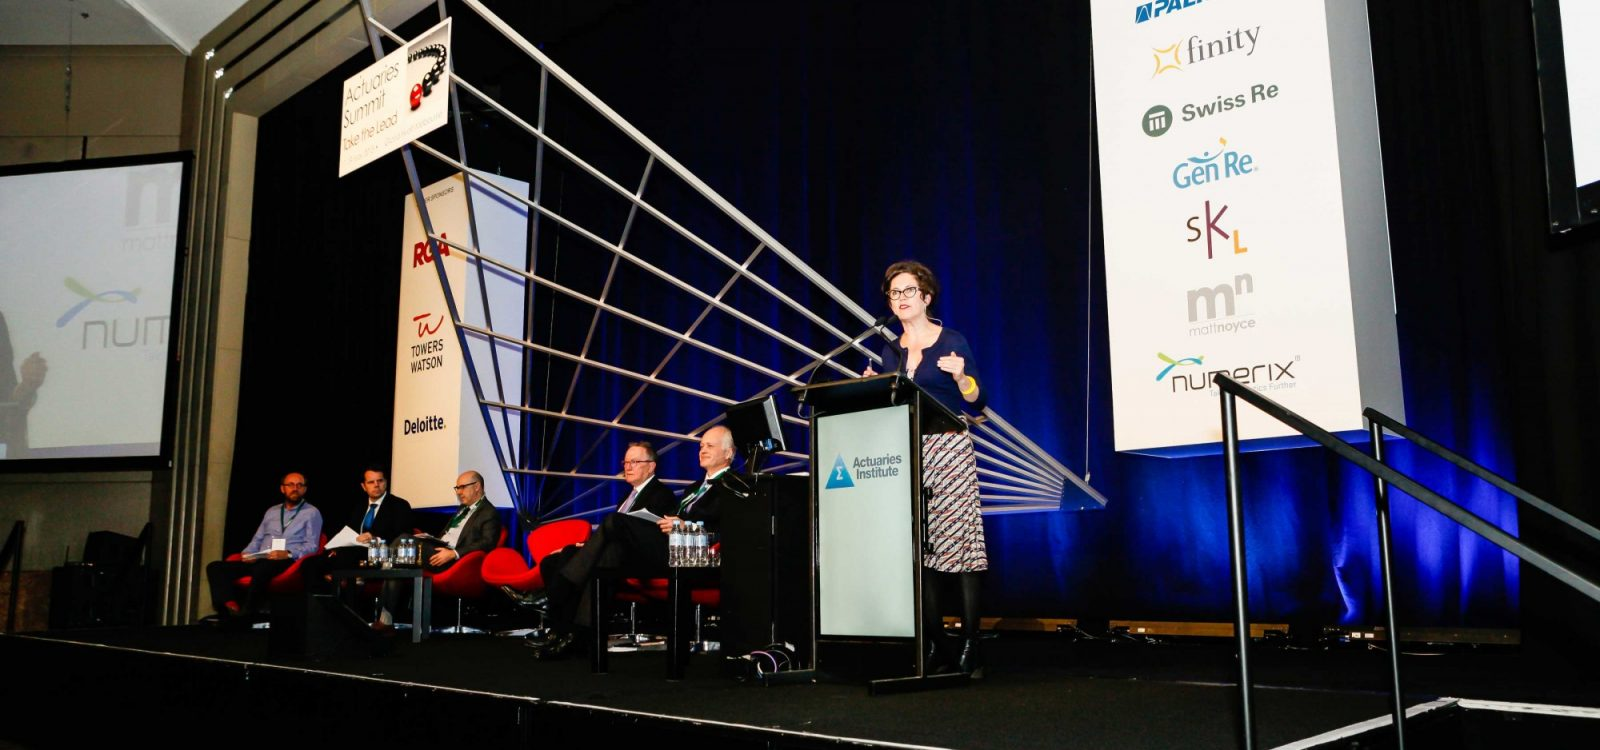 Taking the Lead at the Actuaries Summit